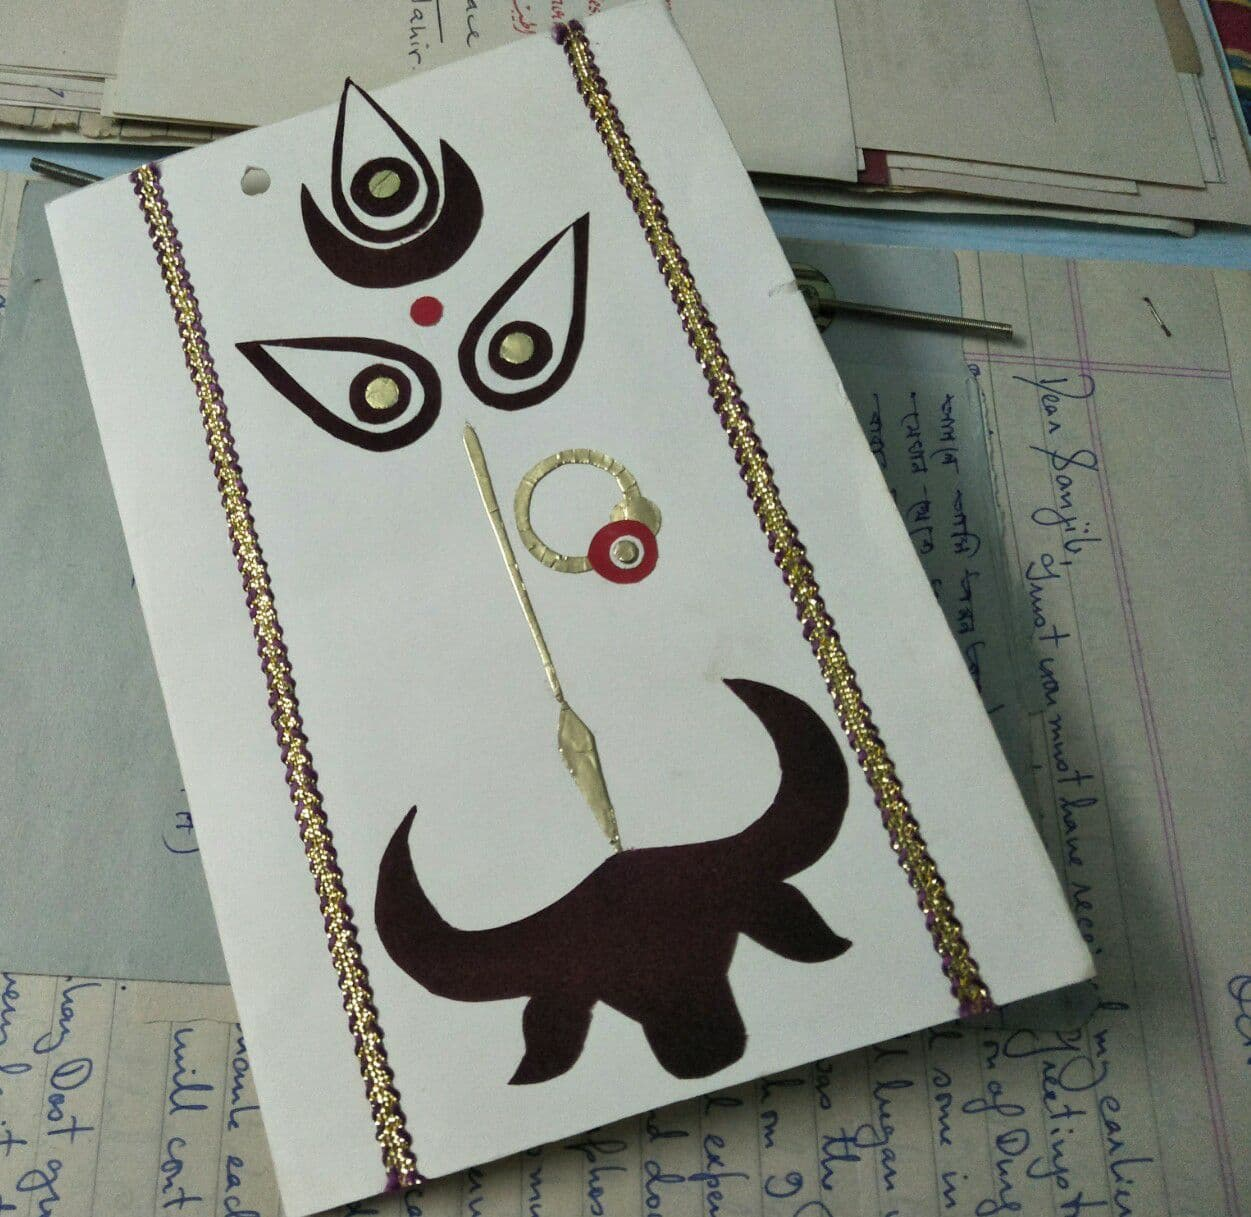 This main illustration is a photograph of the front cover of a Durga Puja greeting card received by queer support group Counsel Club, Kolkata in October 1998. This handmade card is vertically oriented and has cut-outs made out of thick gold, brown and red coloured paper pasted on white chart paper. The cut-outs depict the three eyes of Goddess Durga, a red 'bindi' on her forehead, a nose ringlet, and the nose itself in the form of a long spear pointing downwards towards the head of a buffalo, symbolizing the 'rakshasa' the goddess is supposed to slay. The goddess' eyes look striking, and given that her mouth has not been shown with any cut-out, it almost appears as if she is wearing a mask. The artwork is framed on either side by two long strips of 'zari' work. The card is placed on an open file of letters received by Counsel Club. A few letters can be seen filed in the background, but the contents are not quite legible. Photo credit: Pawan Dhall